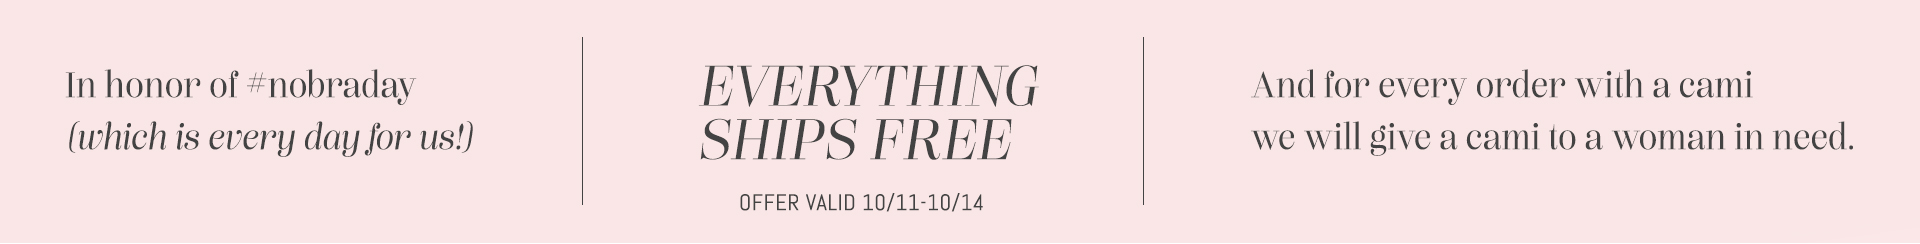 Everything ships free